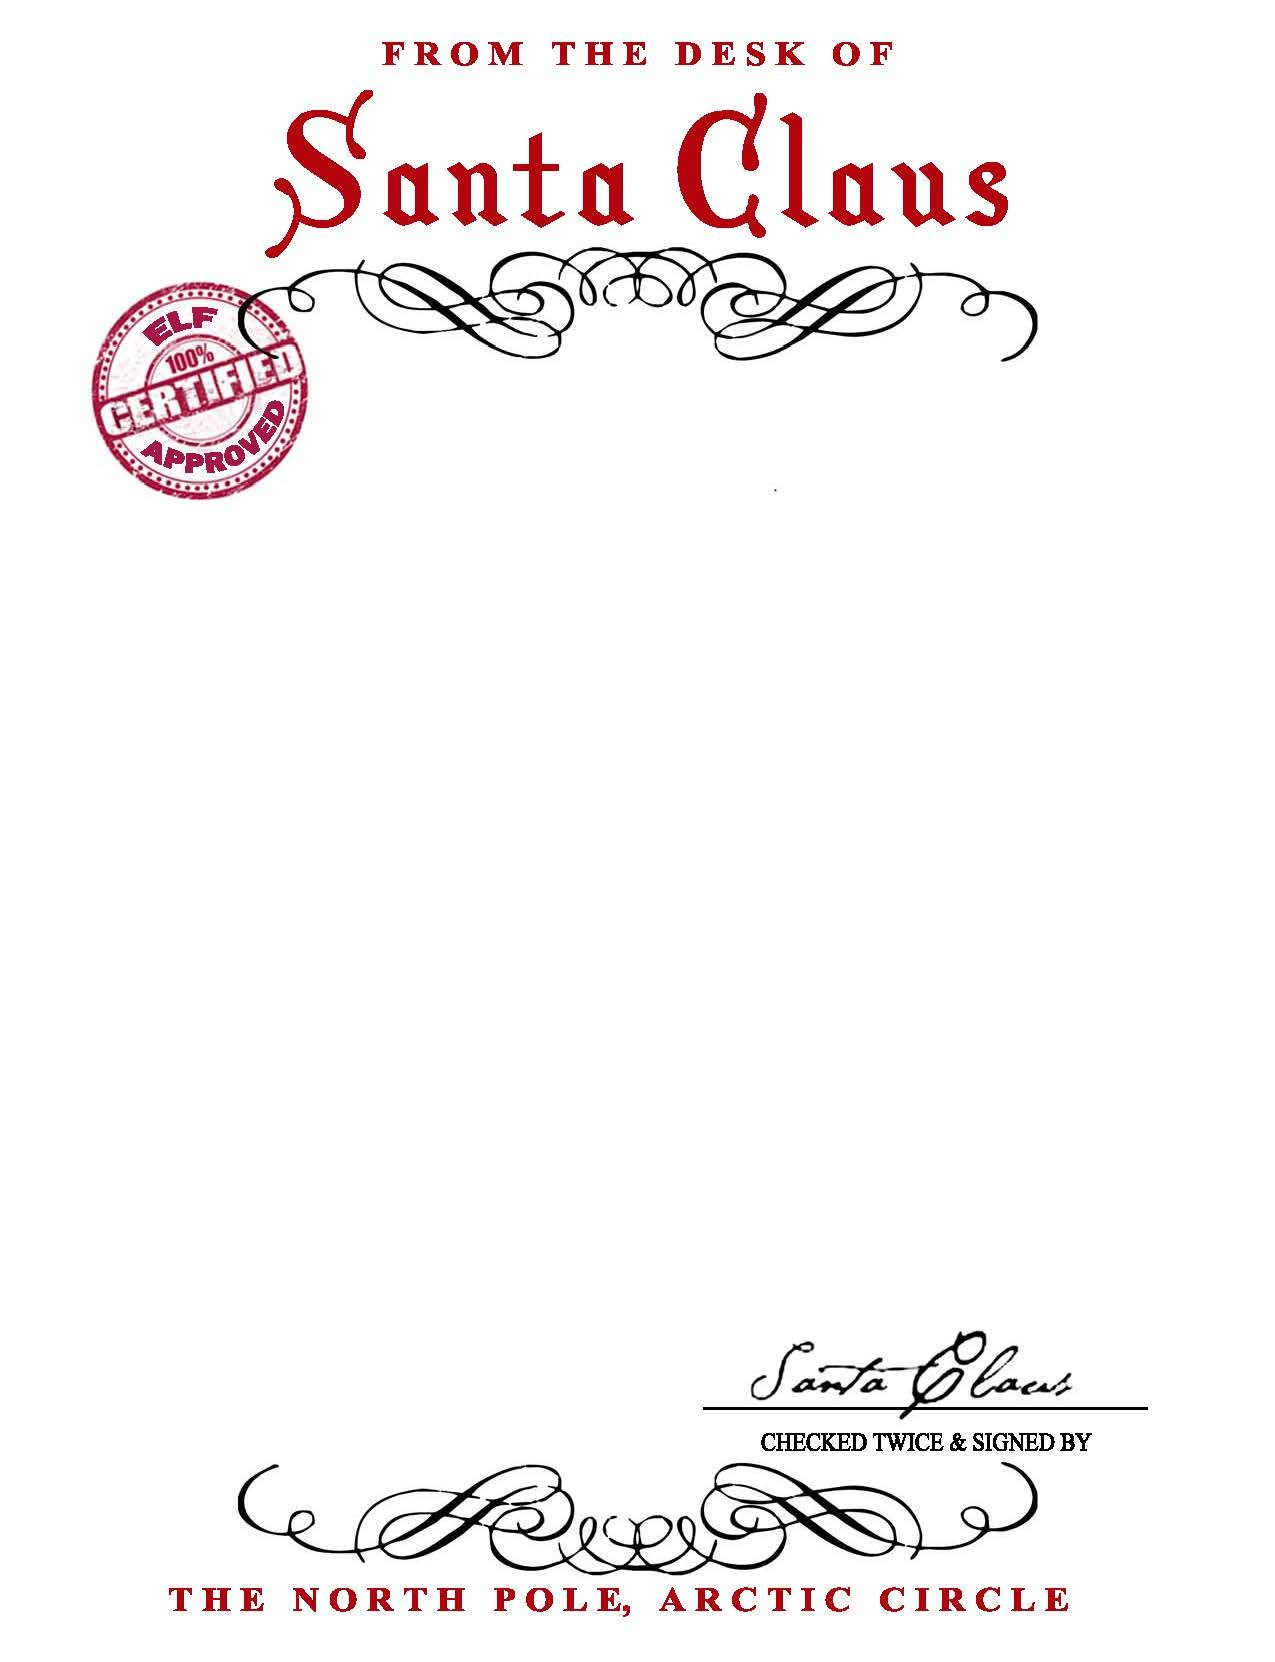 Click here for a free printable version of the SANTA CLAUS LETTERHEAD.